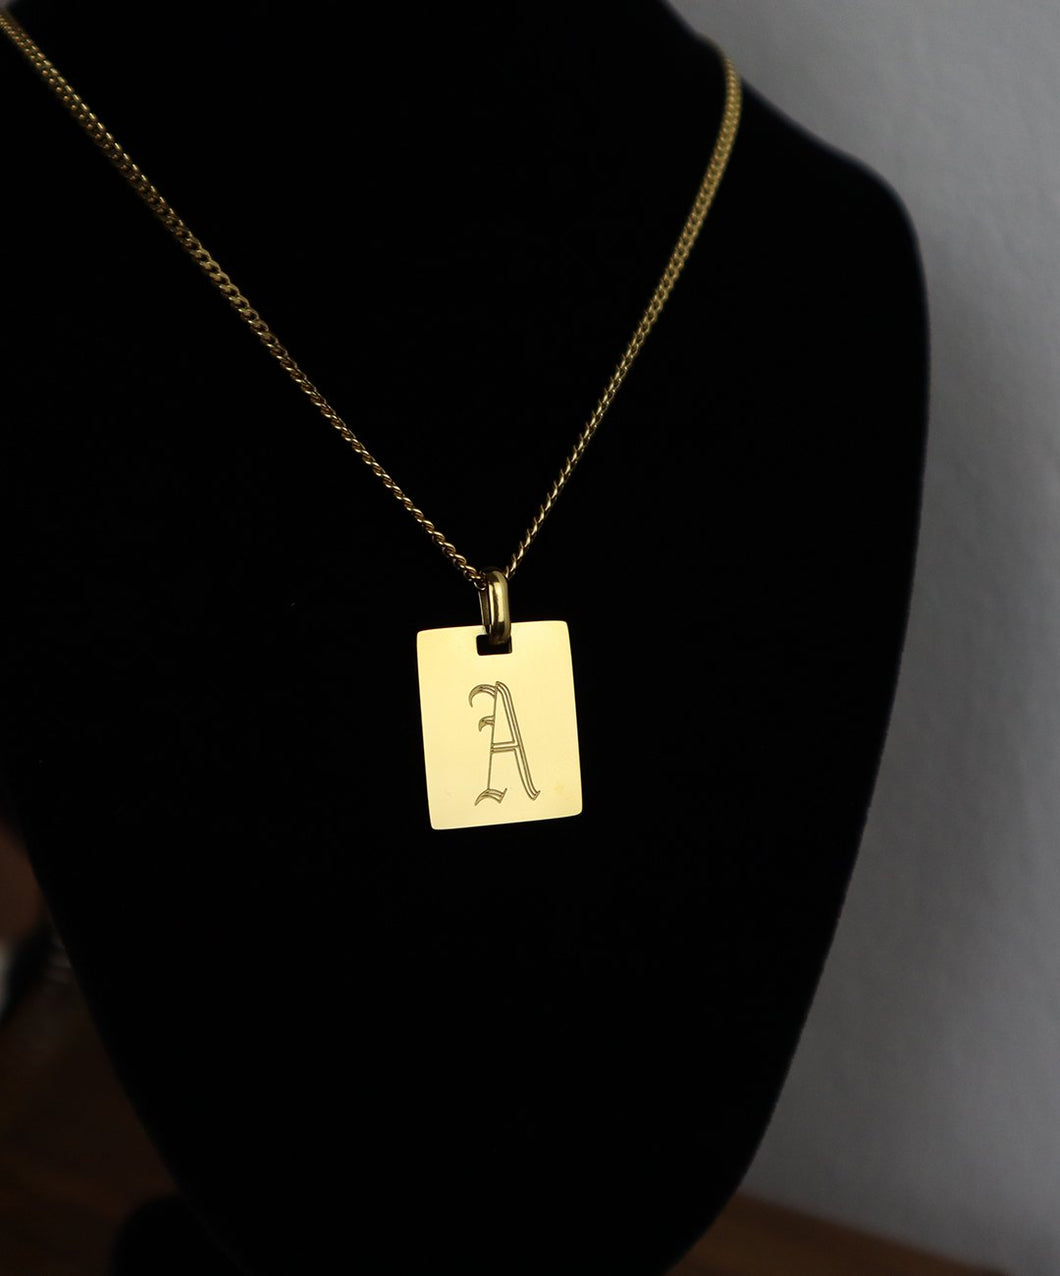 18k Gold Plate Necklace: A